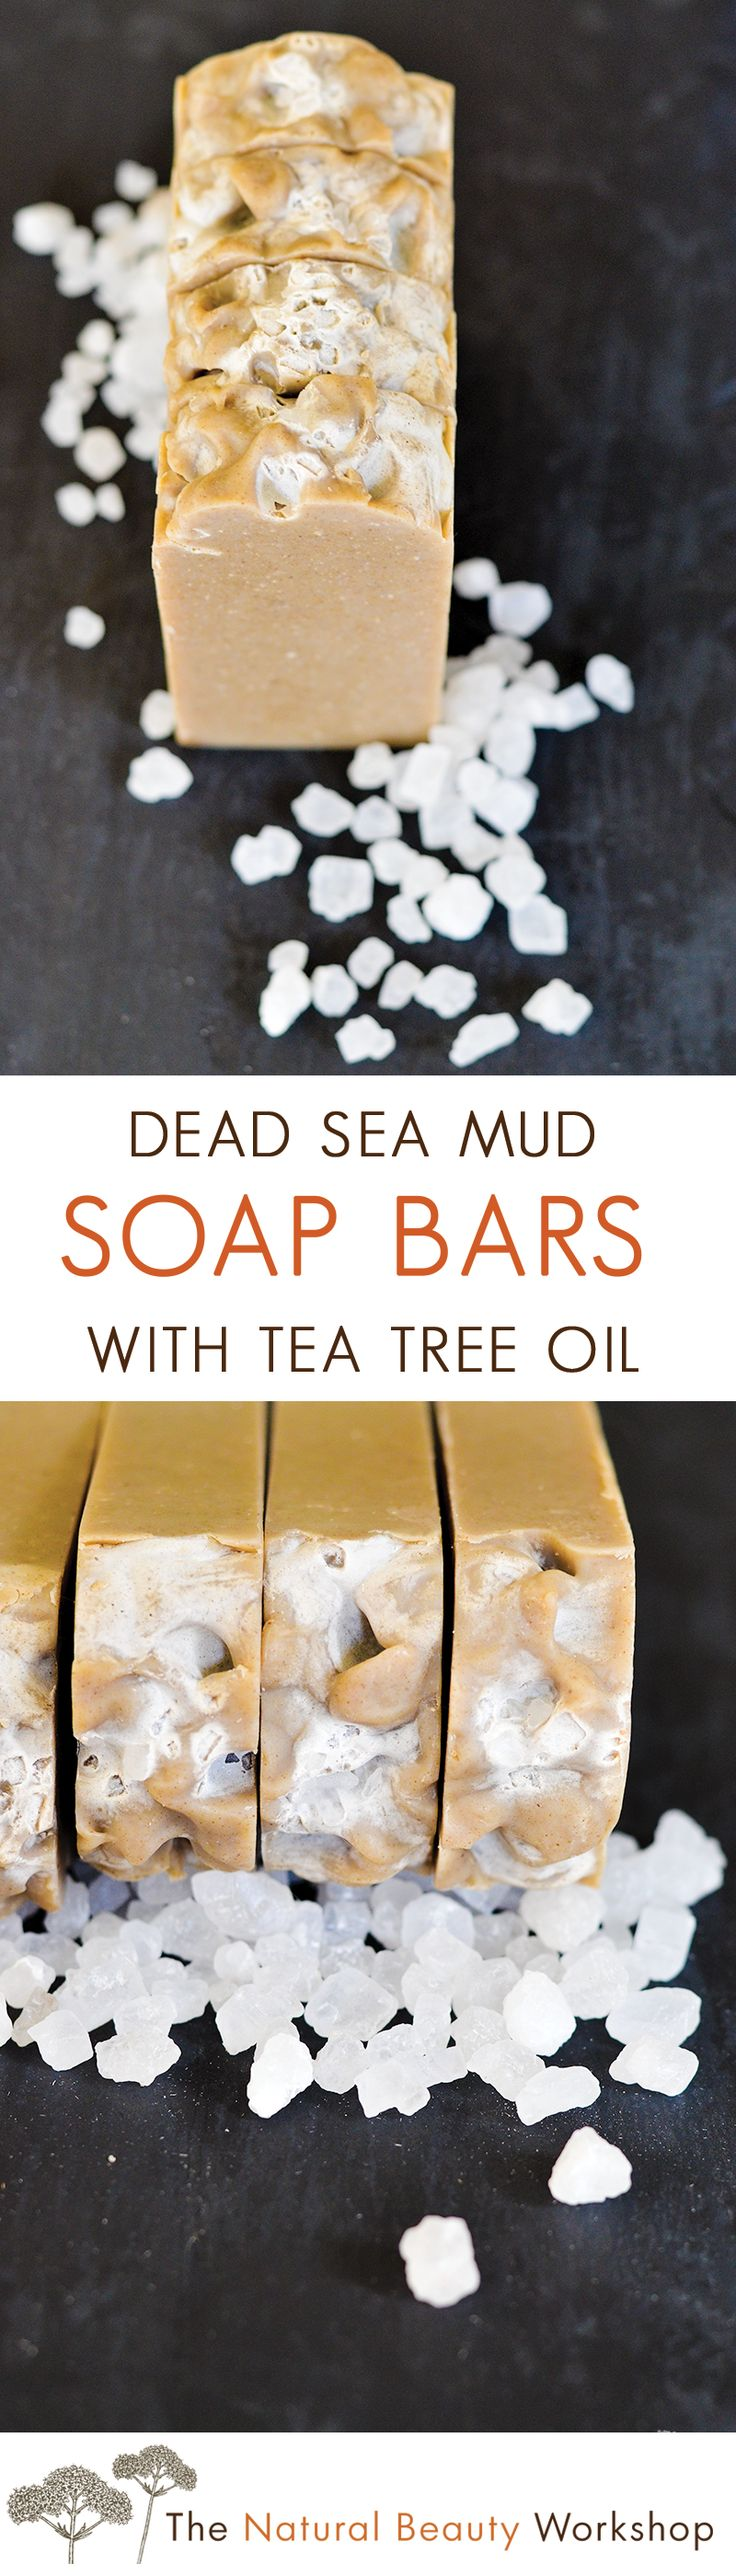 Make Your Own Dead Sea Mud and Tea Tree Soap From Scratch!